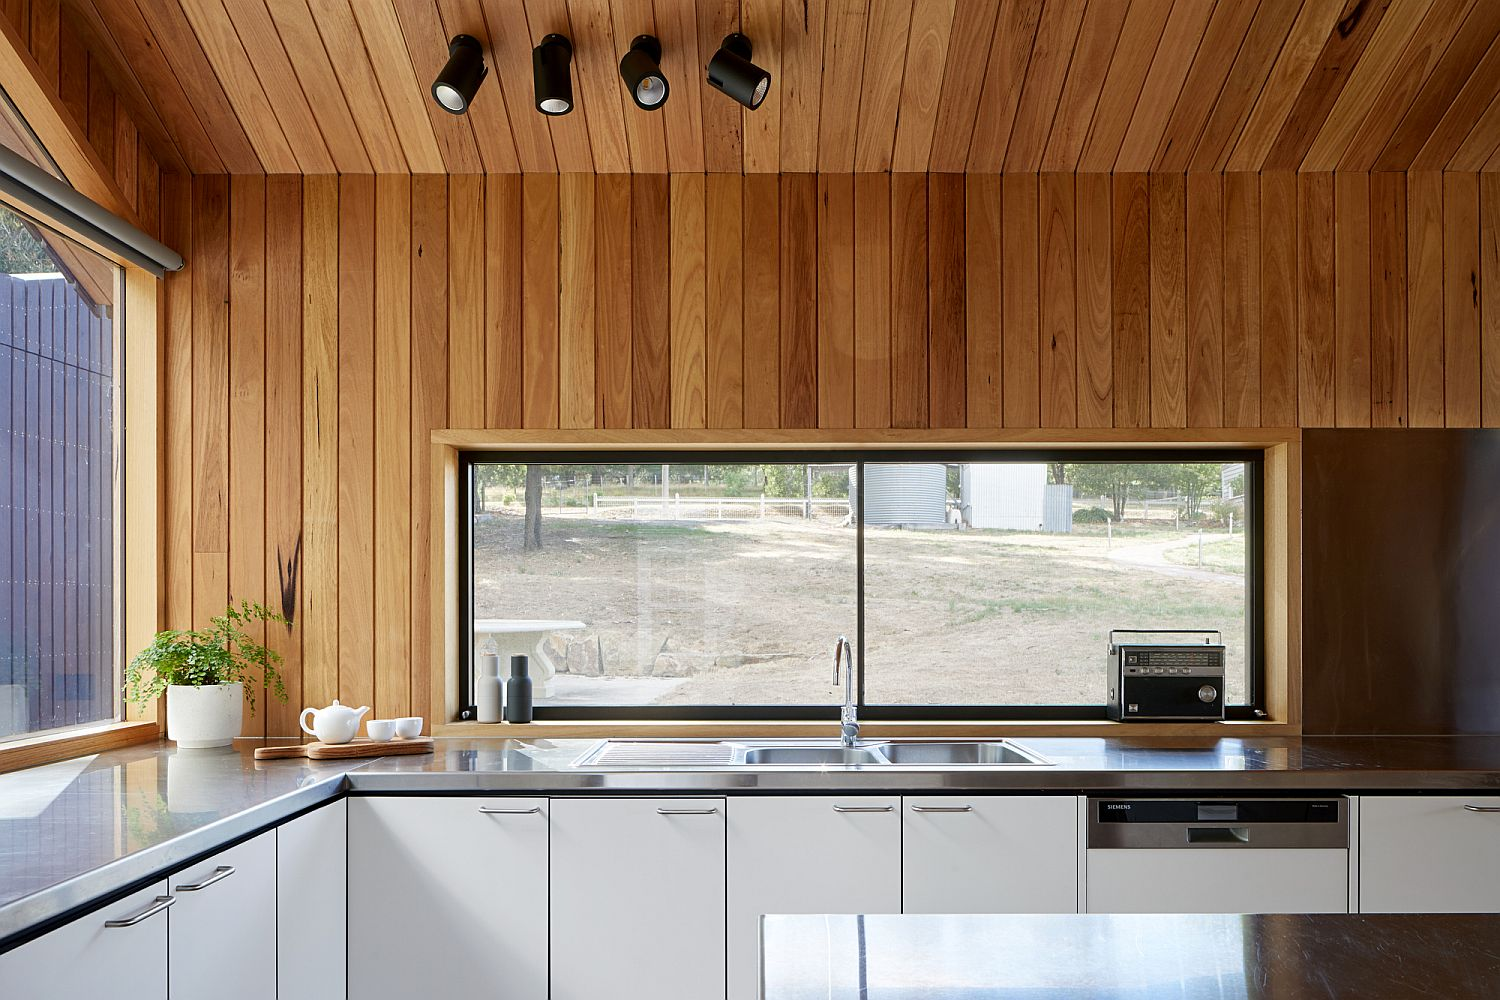 Combine-innovative-lighting-along-with-natural-light-inside-the-kitchen